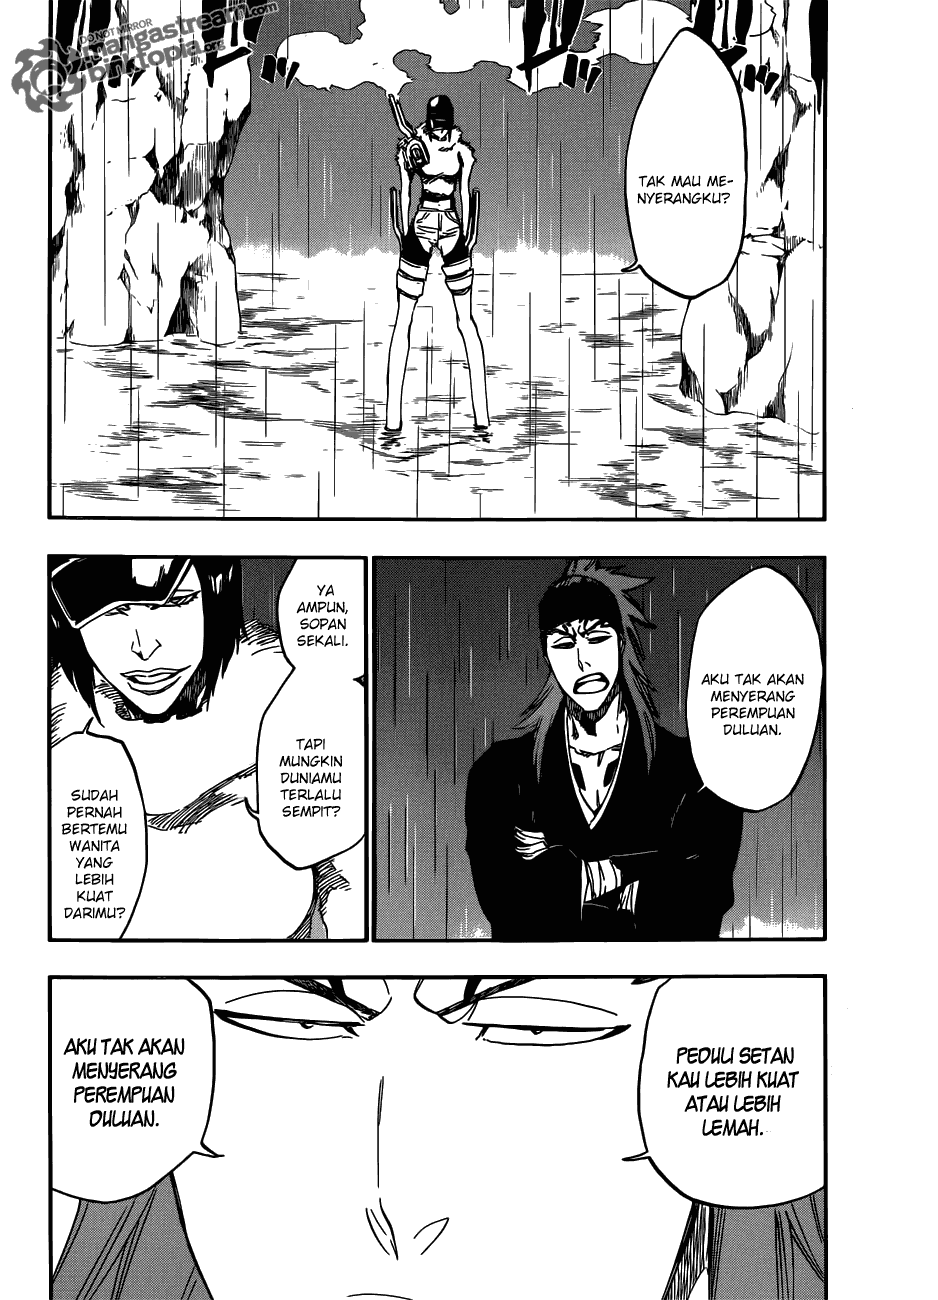 bleach Online 467 manga page 10